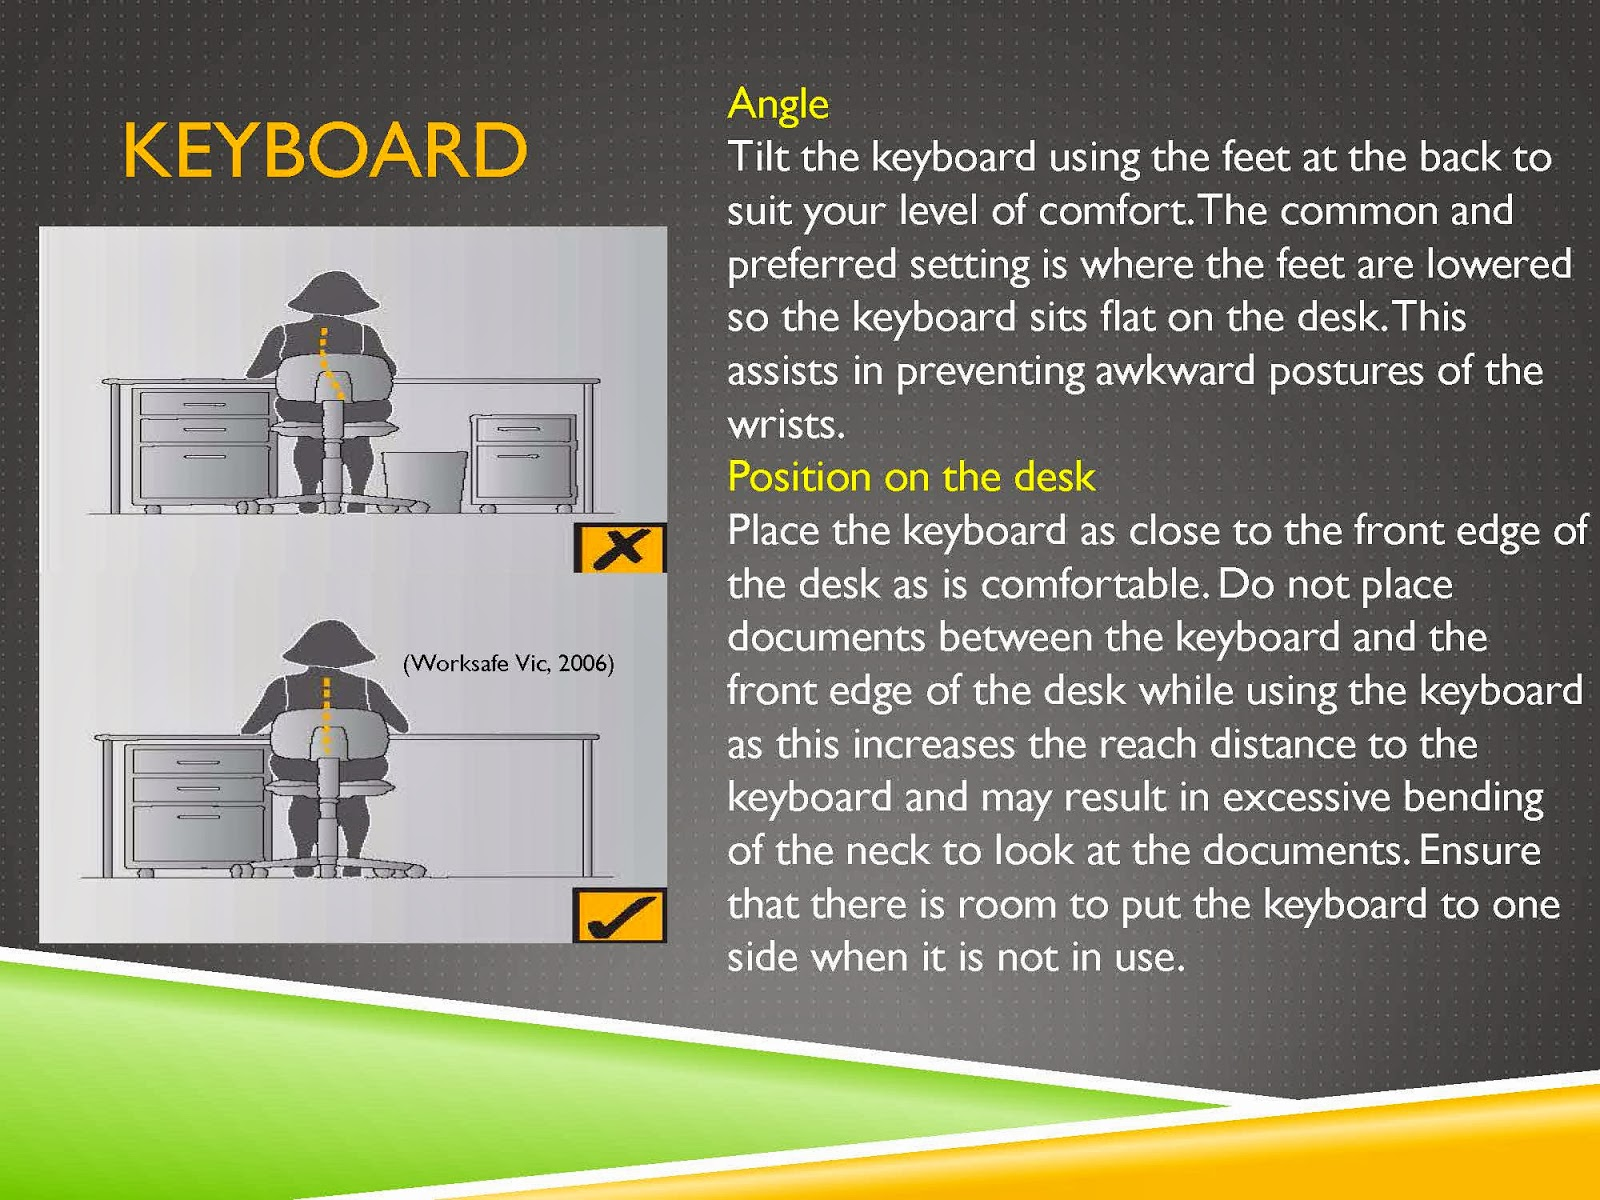 KEYBOARD TIPS